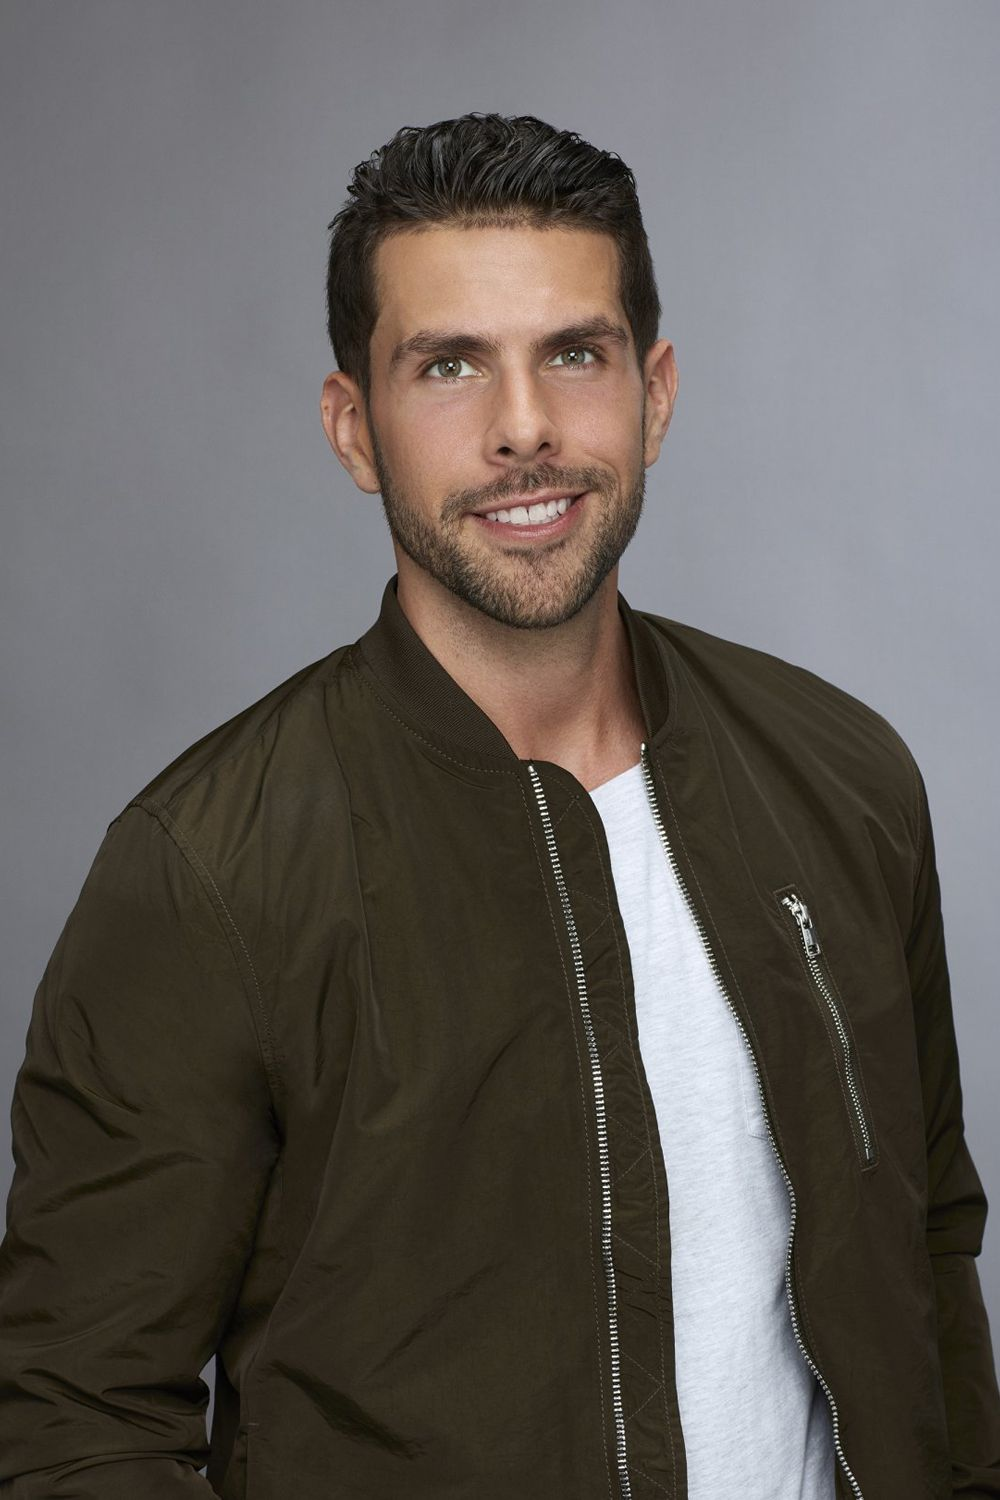 Chris Randone ('The Bachelorette' Season 14) Watching the downfall of Chris Randone on The Bachelorette season 14 was honestly kind of sad. After forming a fairly solid connection with bachelorette Becca Kufrin, Chris got totally in his head and made some enemies in the house.